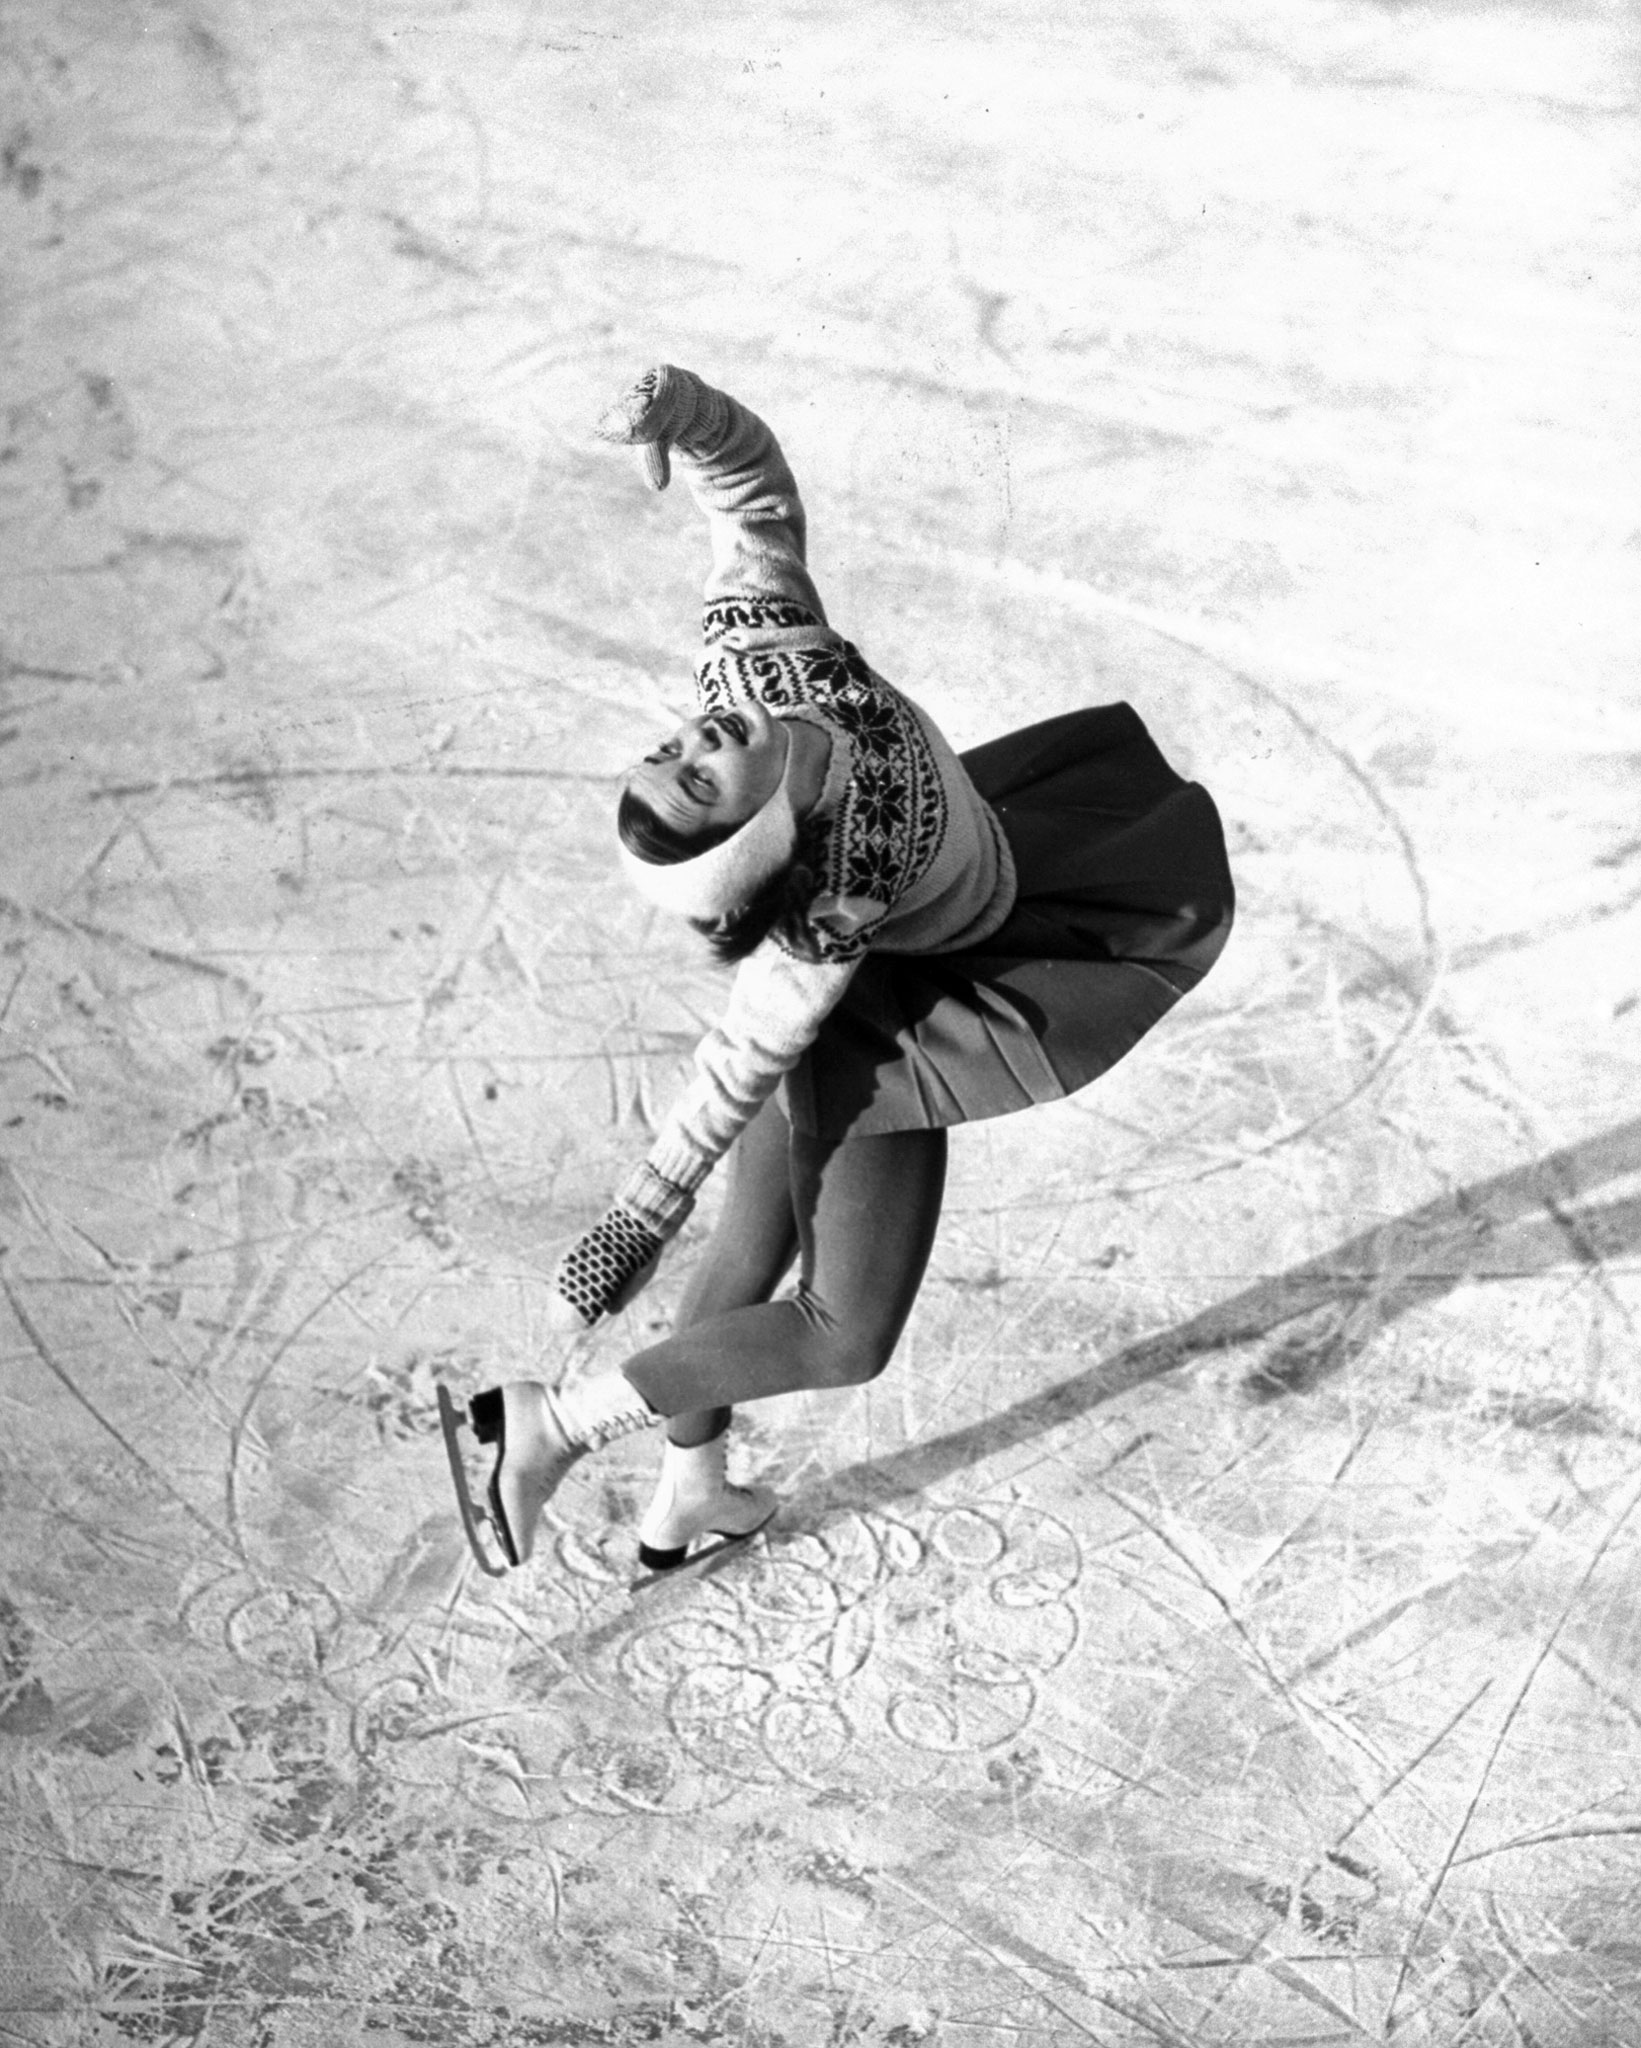 <b>Caption from LIFE.</b> Ice skater Barbara Ann Scott makes her school figures with perfect loops and whorls as she annexes the world championship in Stockholm.